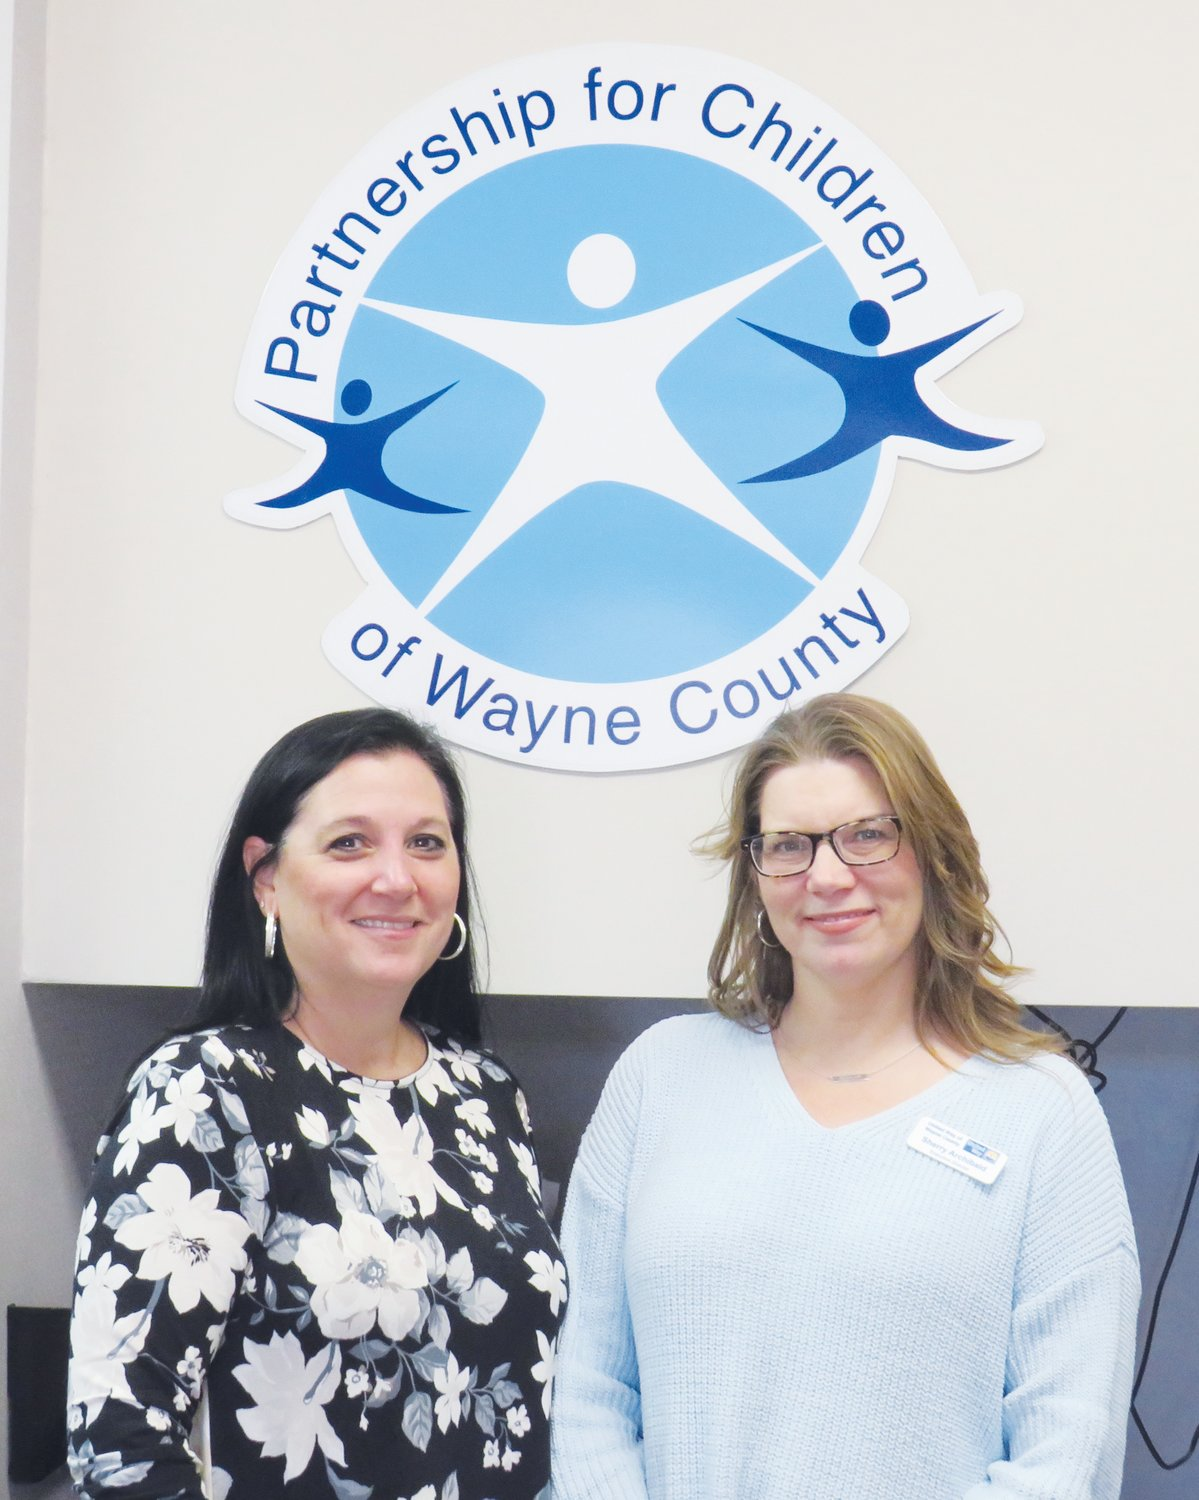 Pictured are Valerie Wallace of Partnership for Children of Wayne County and Sherry Achibald. The Partnership for Children received a grant to support Pregnancy Birth and Beyond, a free, comprehensive prenatal class for expectant mothers and their families.